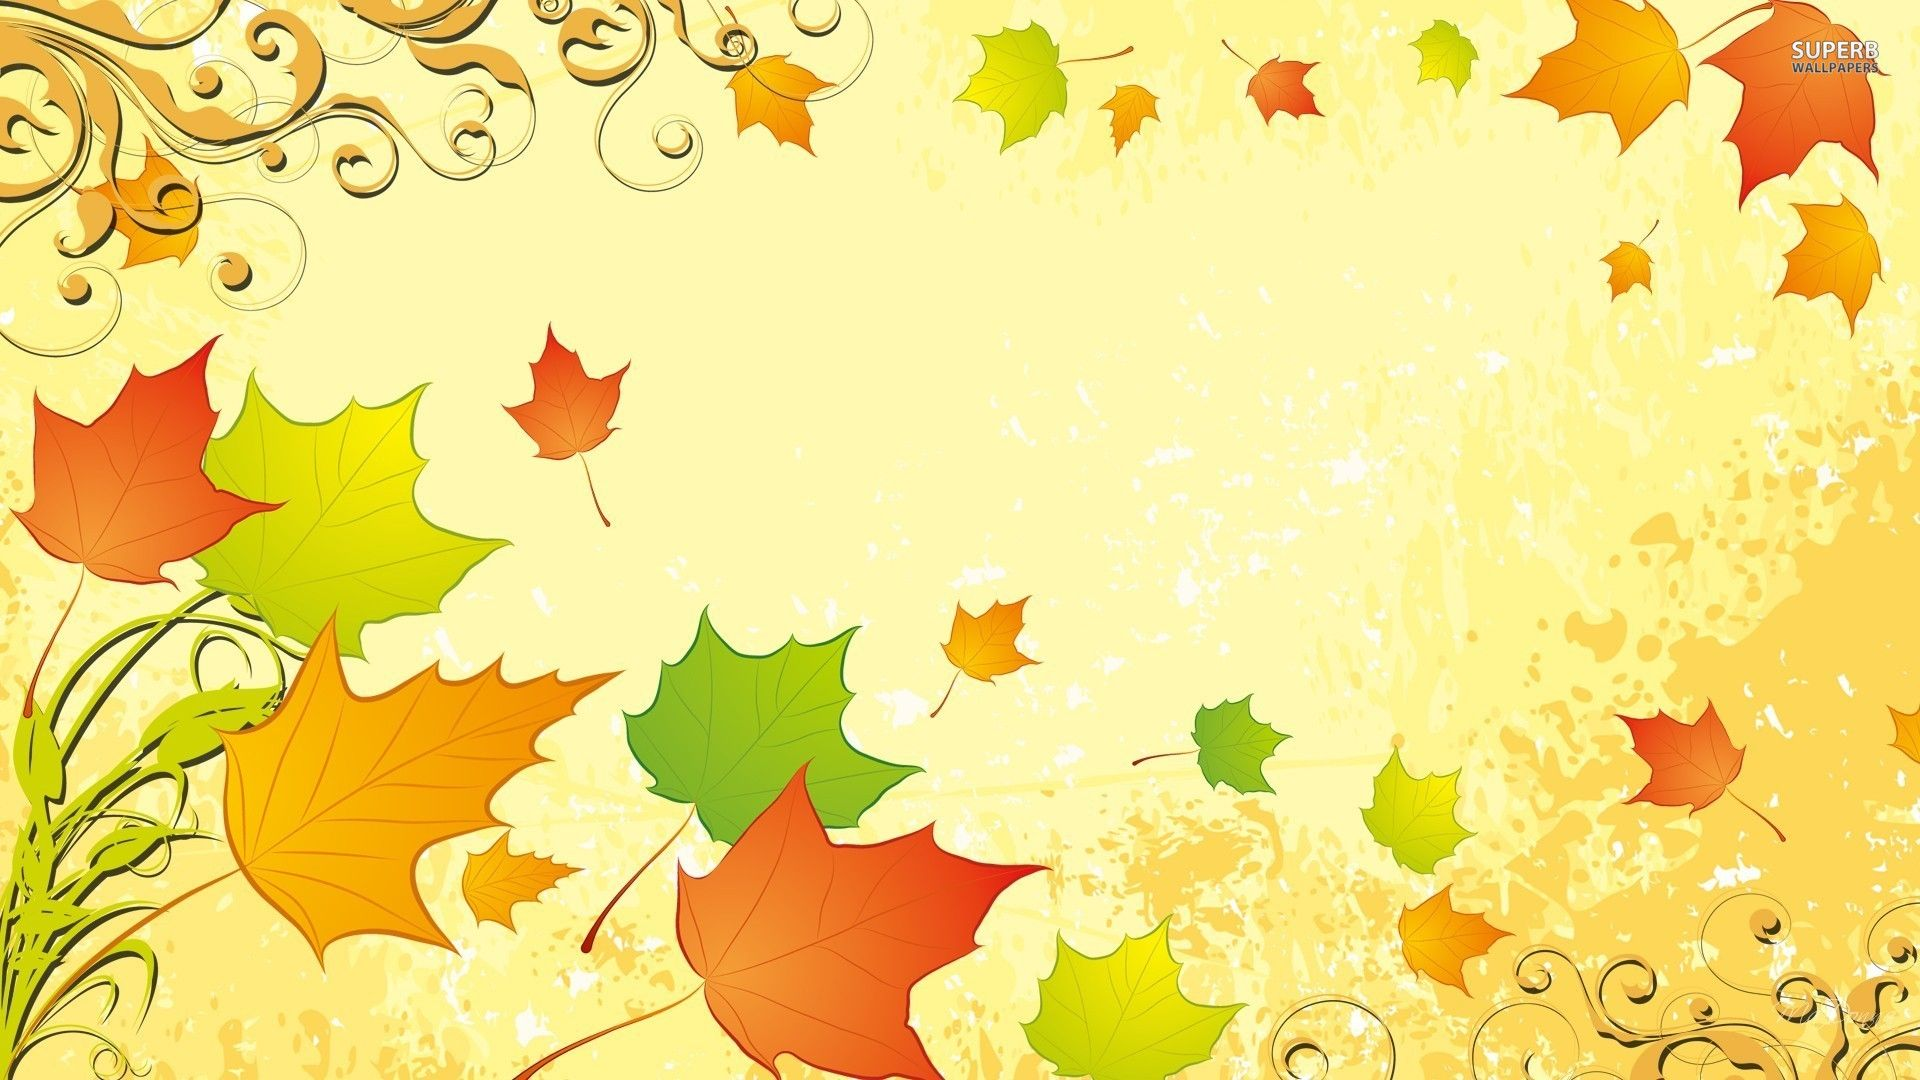 Wallpapers Autumn Leaves 1920x1080